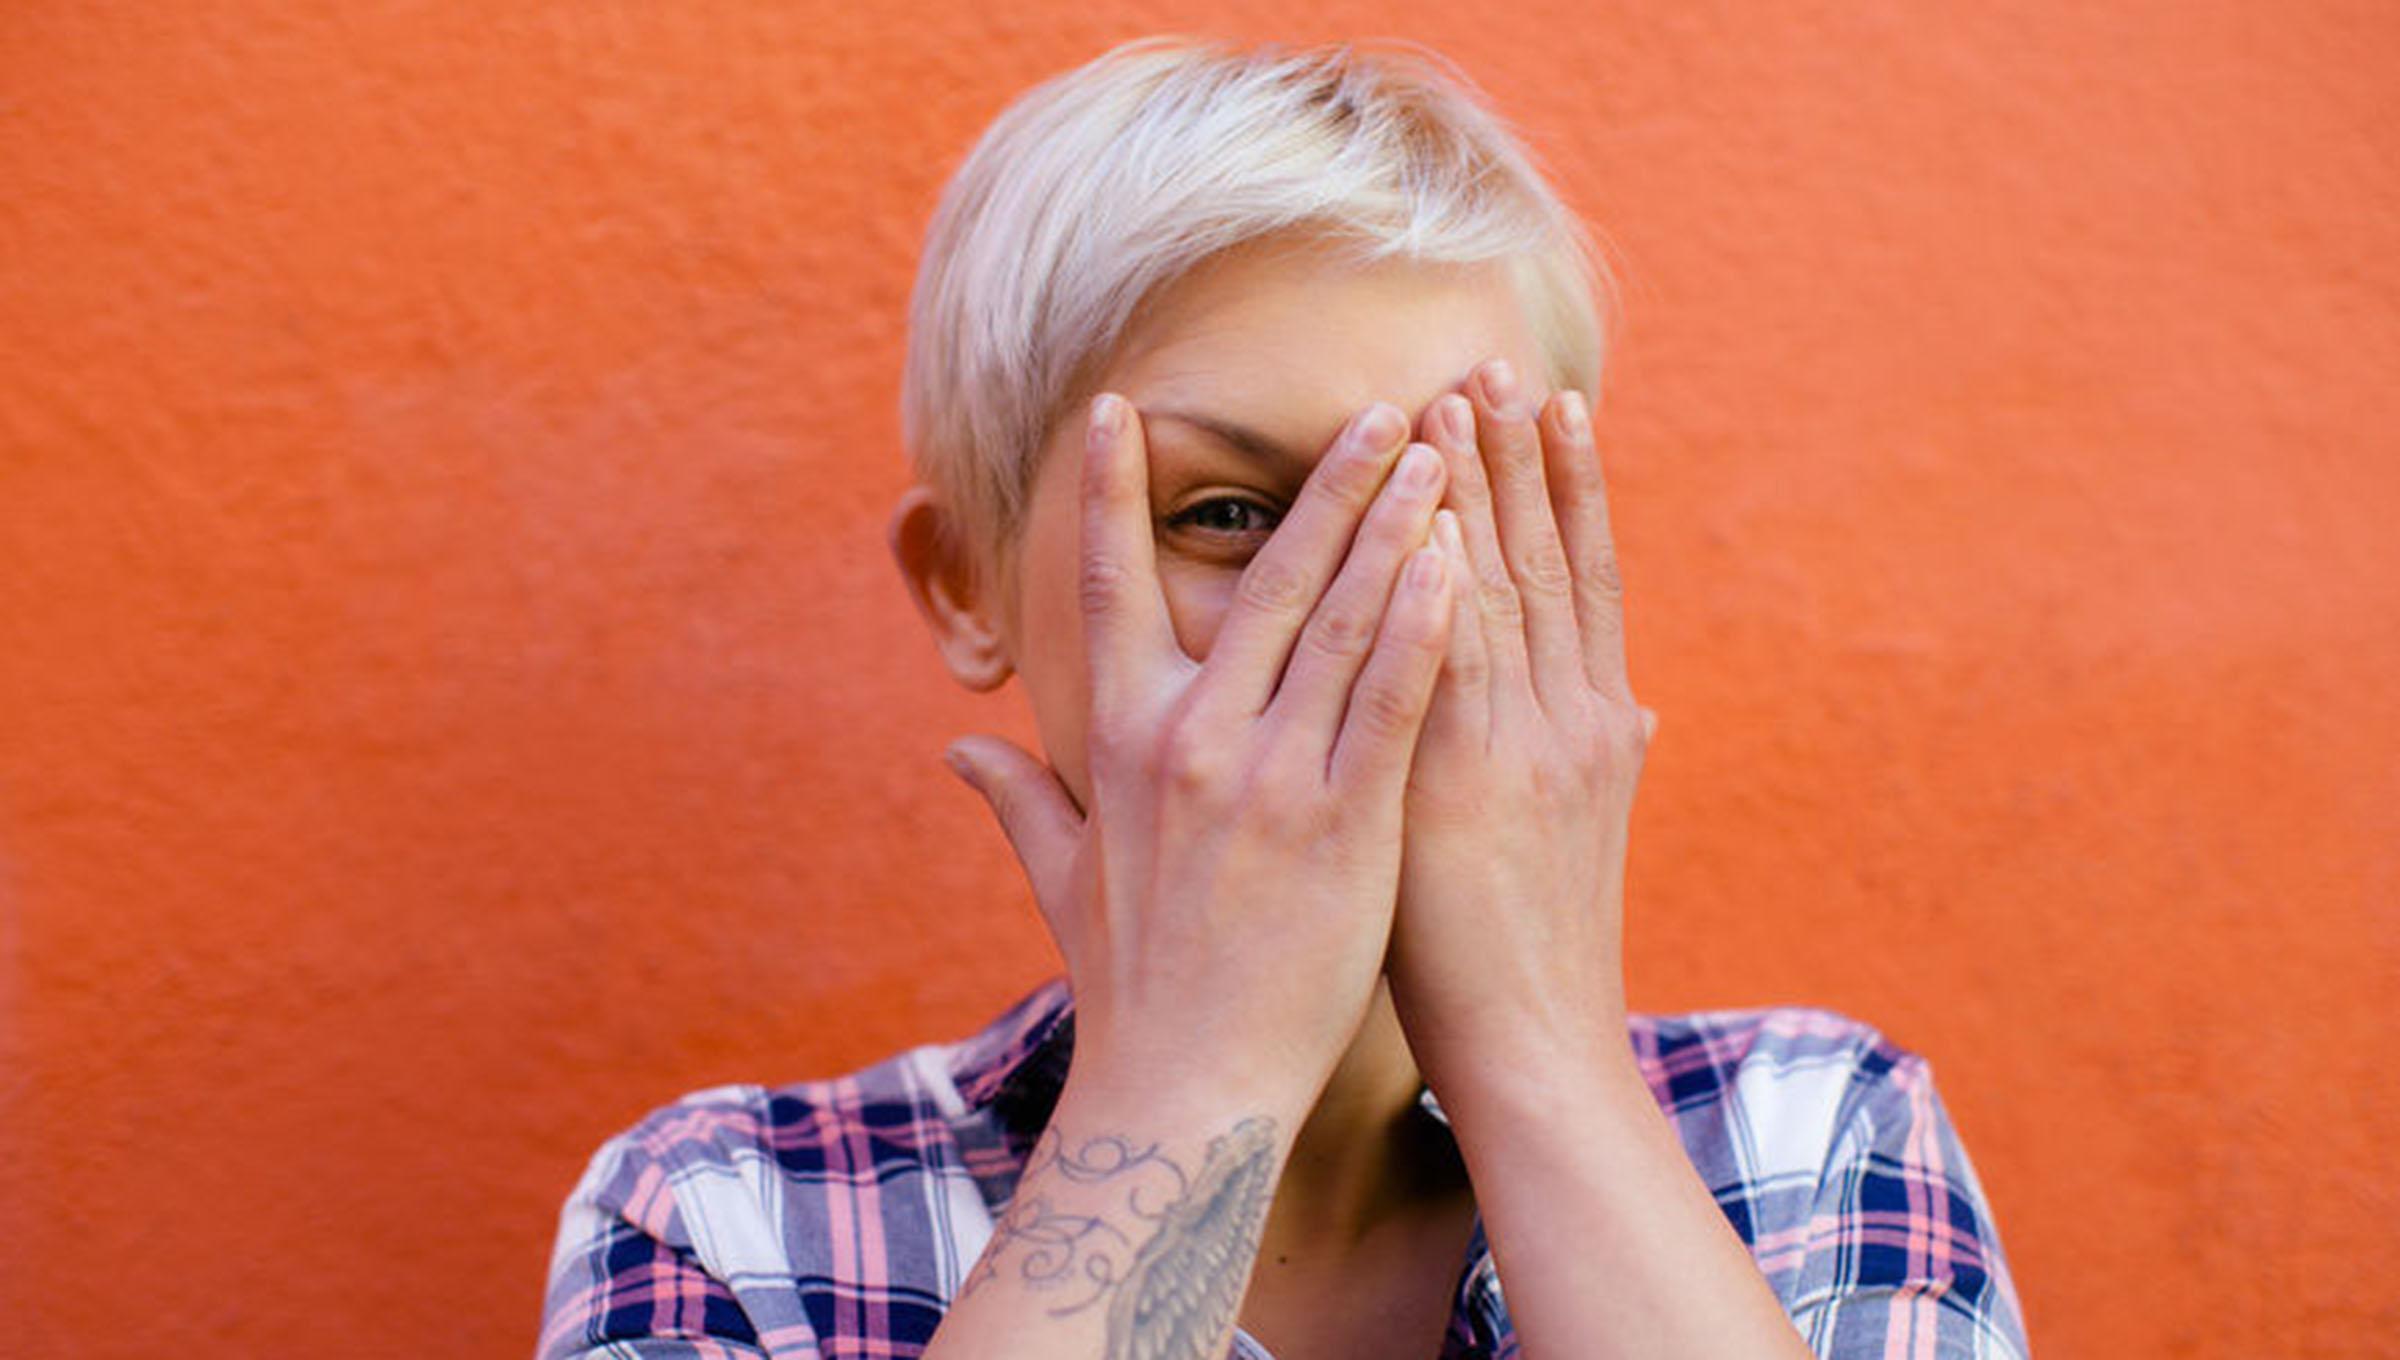 Blonde woman covering one eye with hands